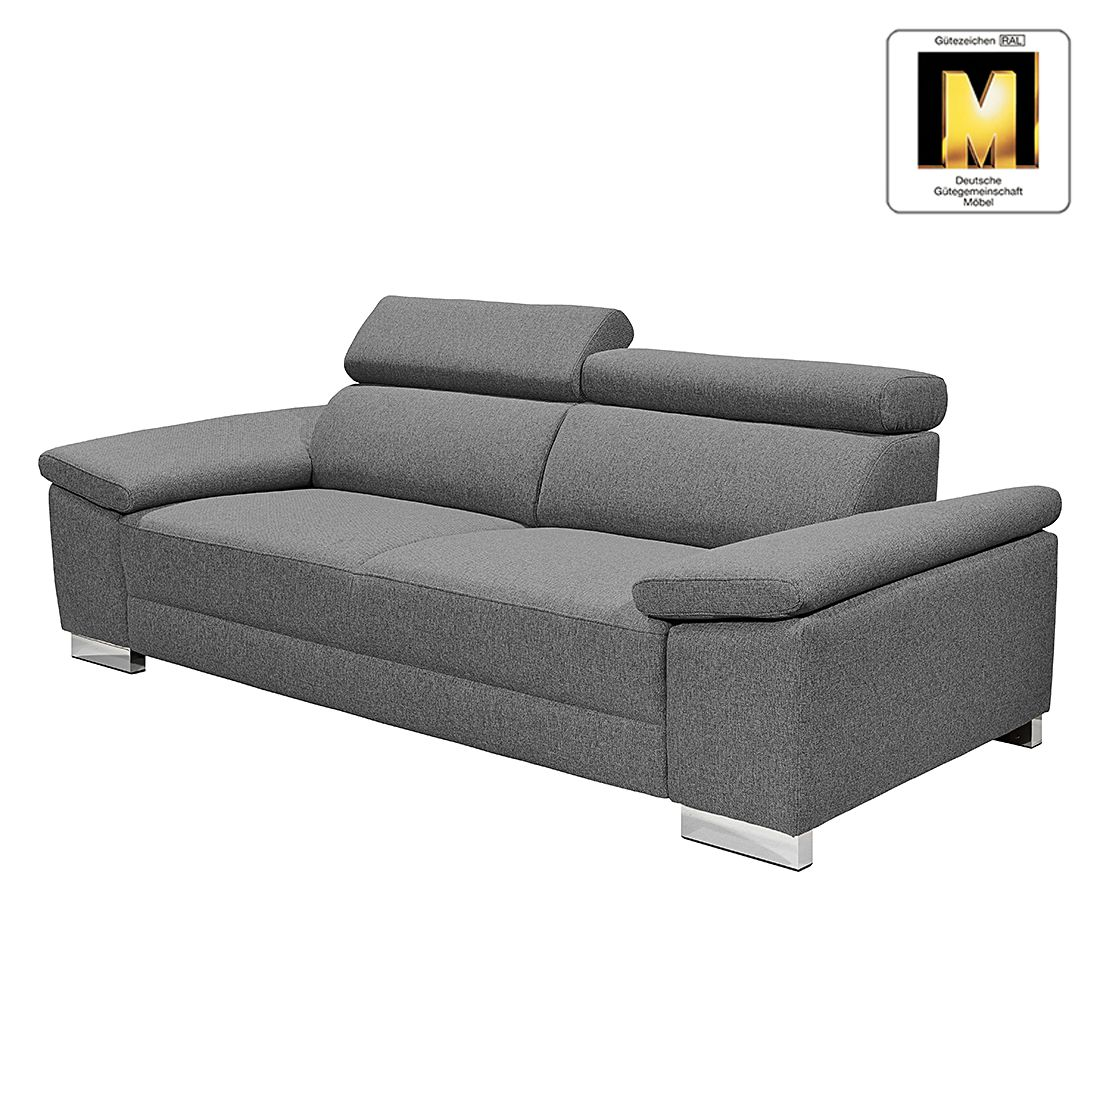 sofa casual line iii 3 sitzer strukturstoff dunkelgrau claas claasen g nstig bestellen. Black Bedroom Furniture Sets. Home Design Ideas